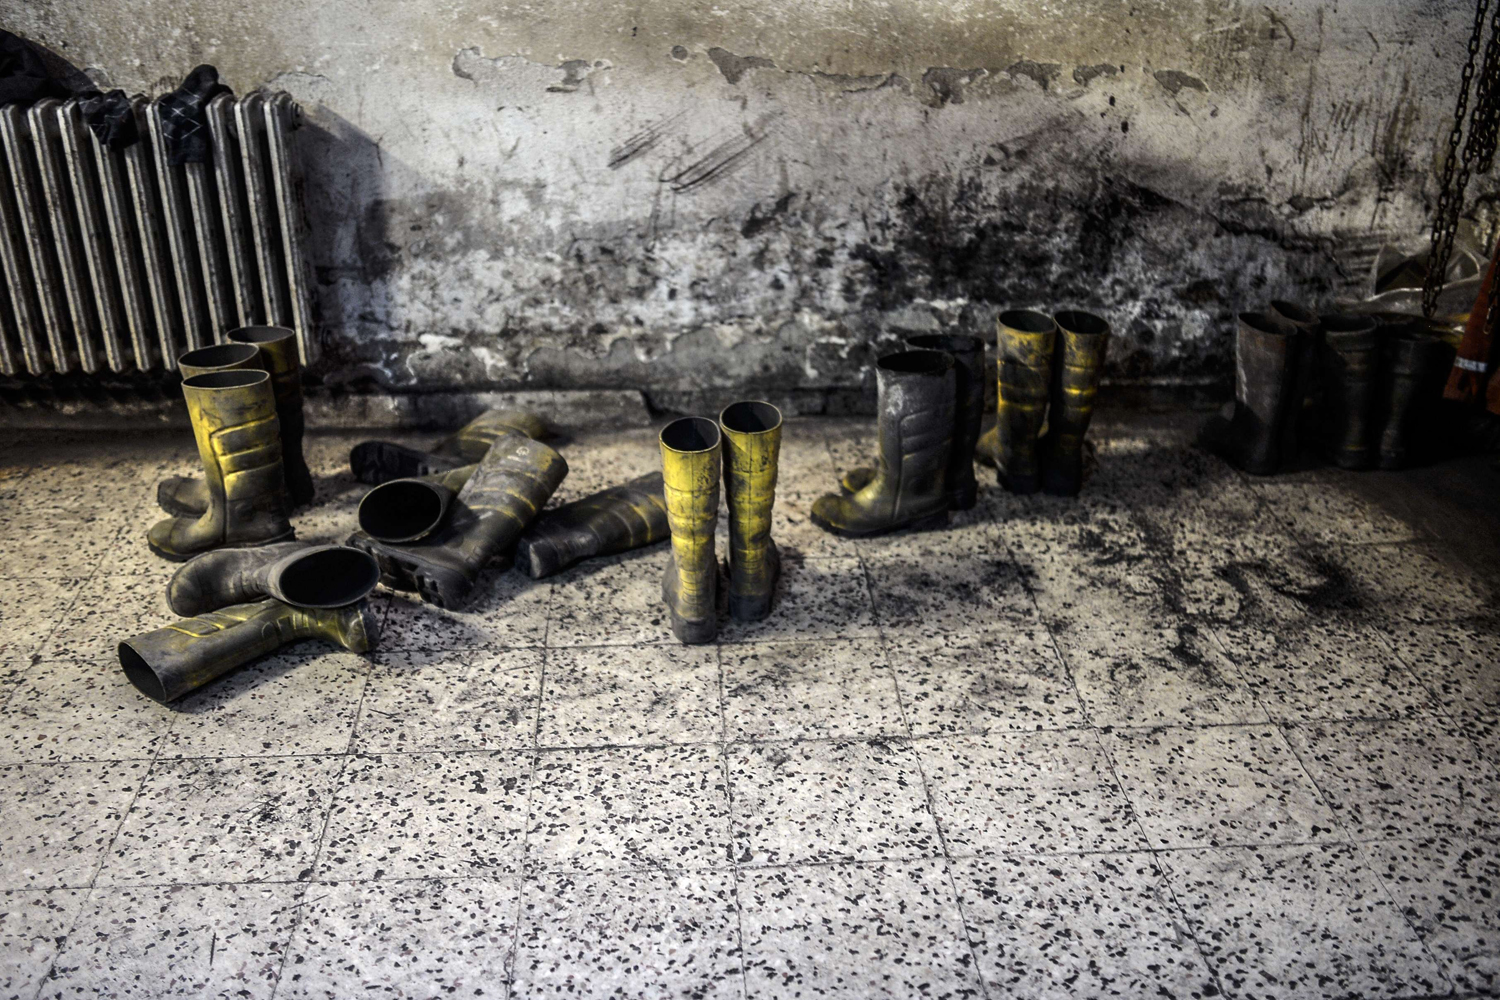 Boots of miners are pictured in an outside building after searching for hours hundreds of co-workers who remain trapped underground in the western Turkish province of Manisa, May 14, 2014.